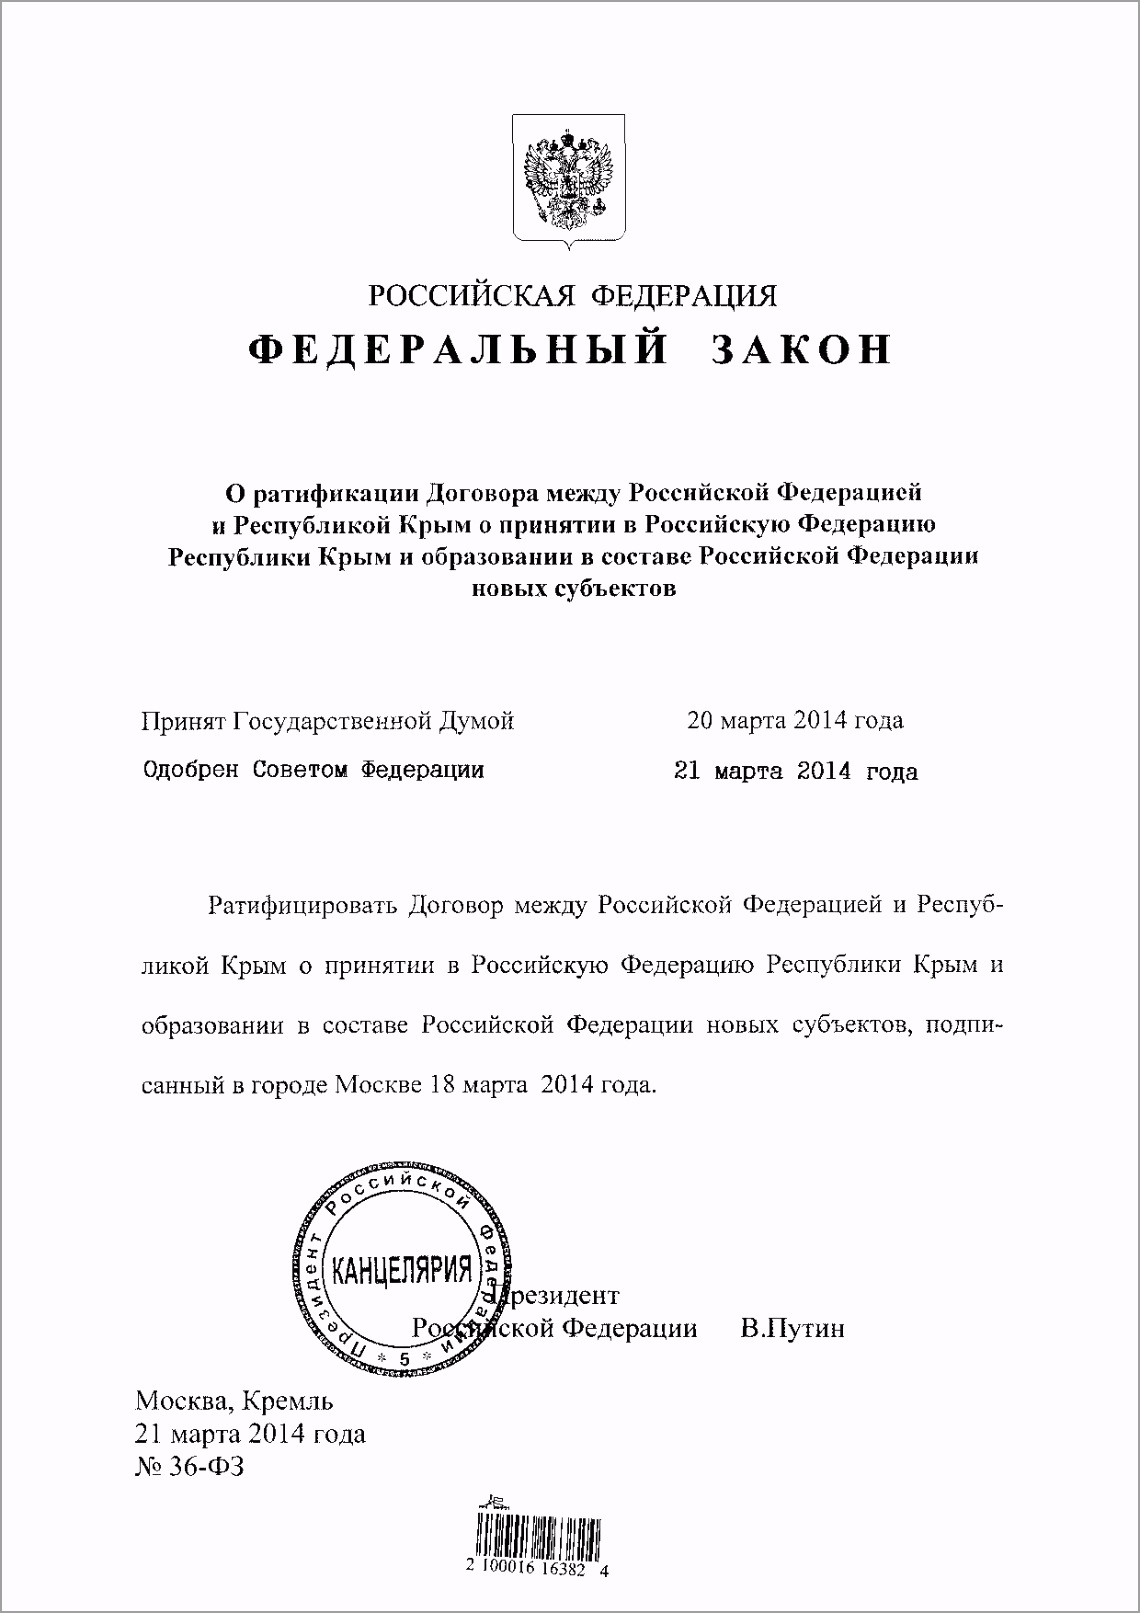 File Federal Law Ratifying the Agreement between the Russian Federation and the Republic of Crimea on Admitting to the Russian Federation pdf eiolo